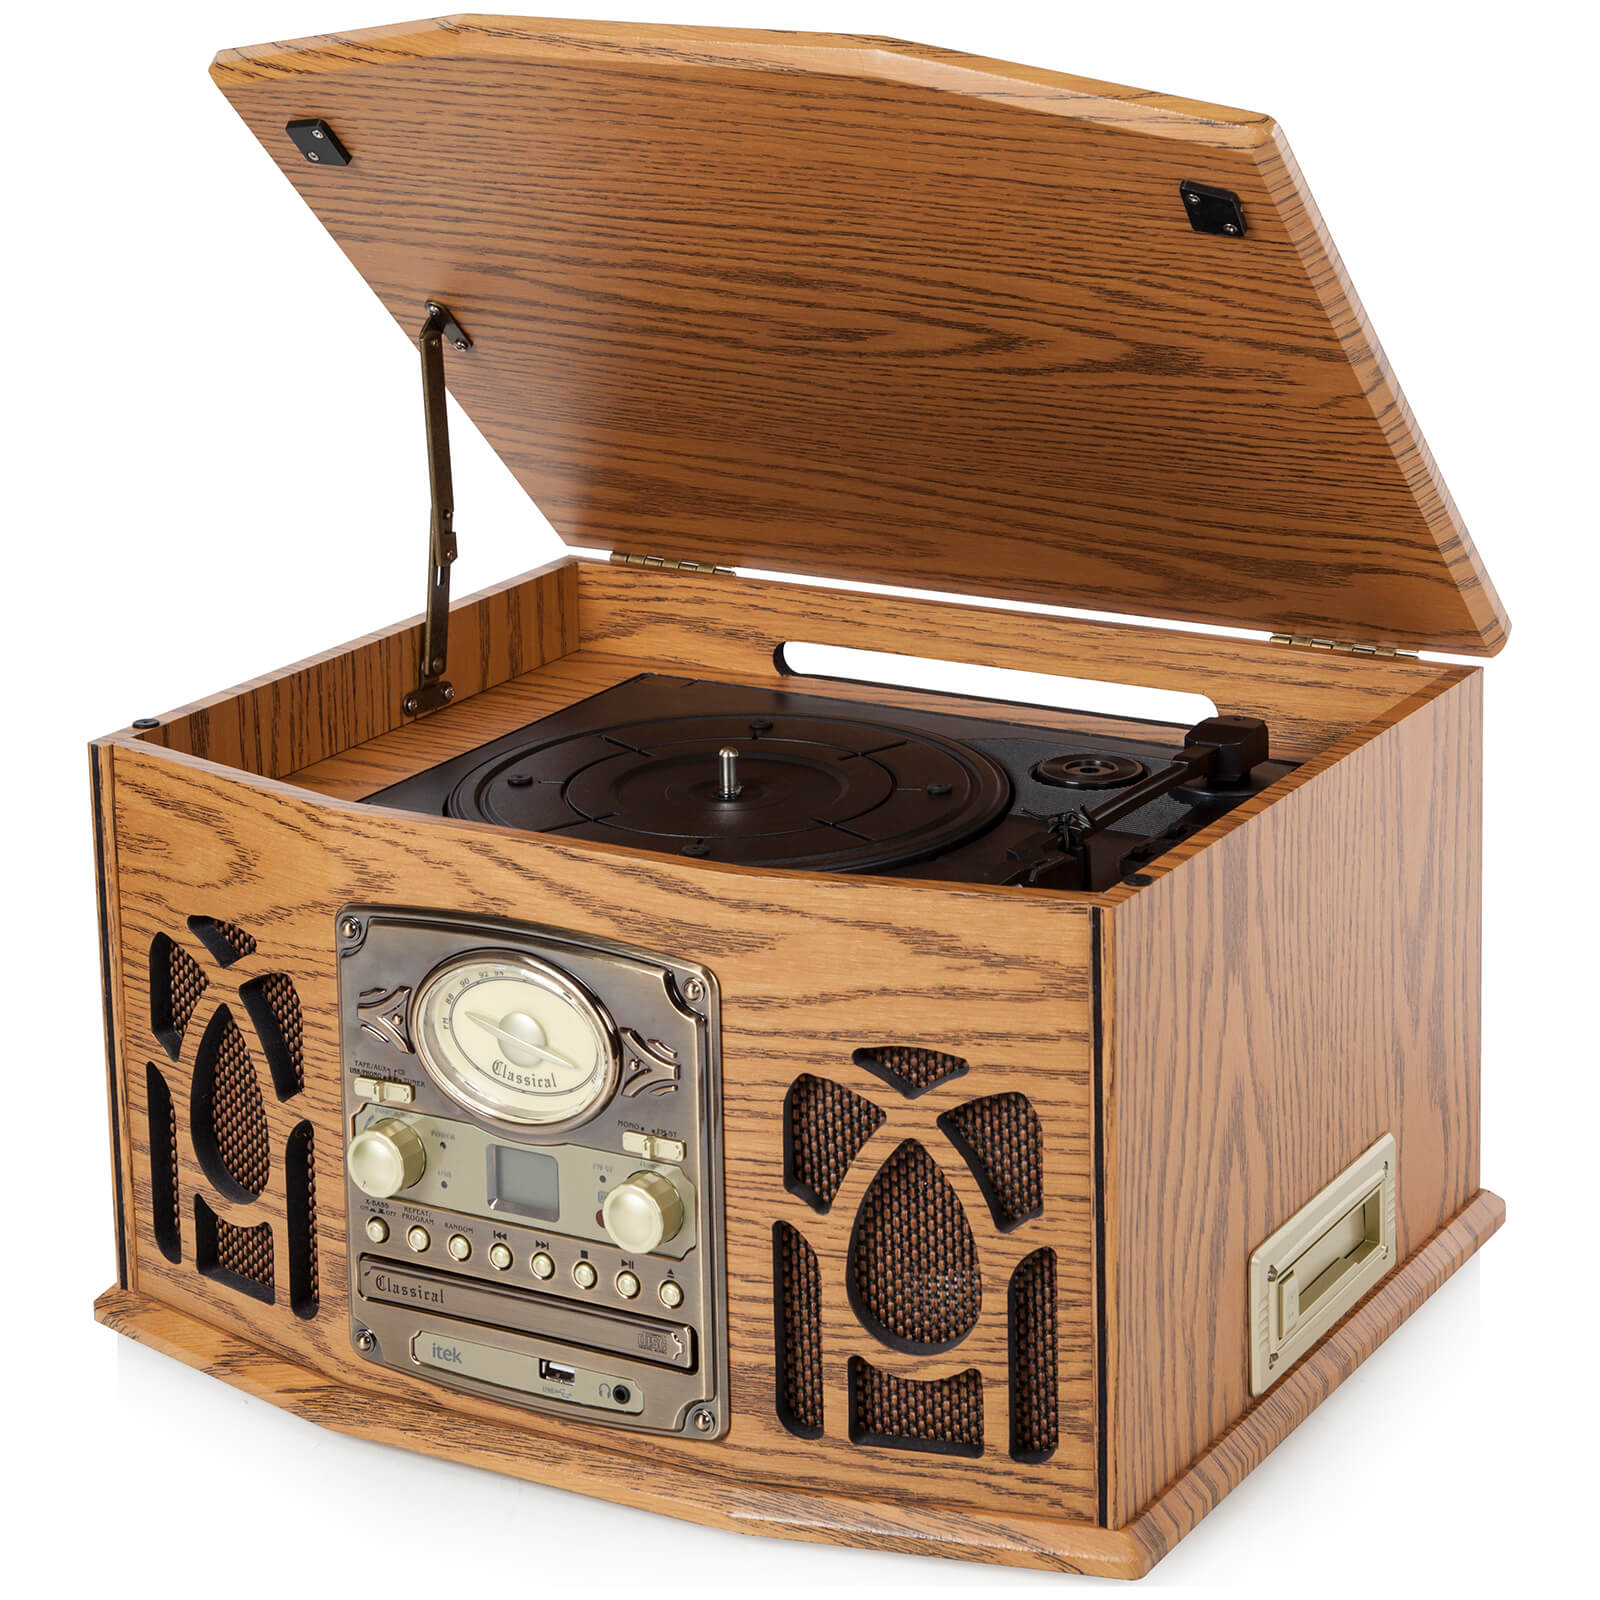 iTek Retro Antique Vintage 5-in-1 Music System (Cassette, CD, Radio, Headphone Jack and Turntable) - Wood